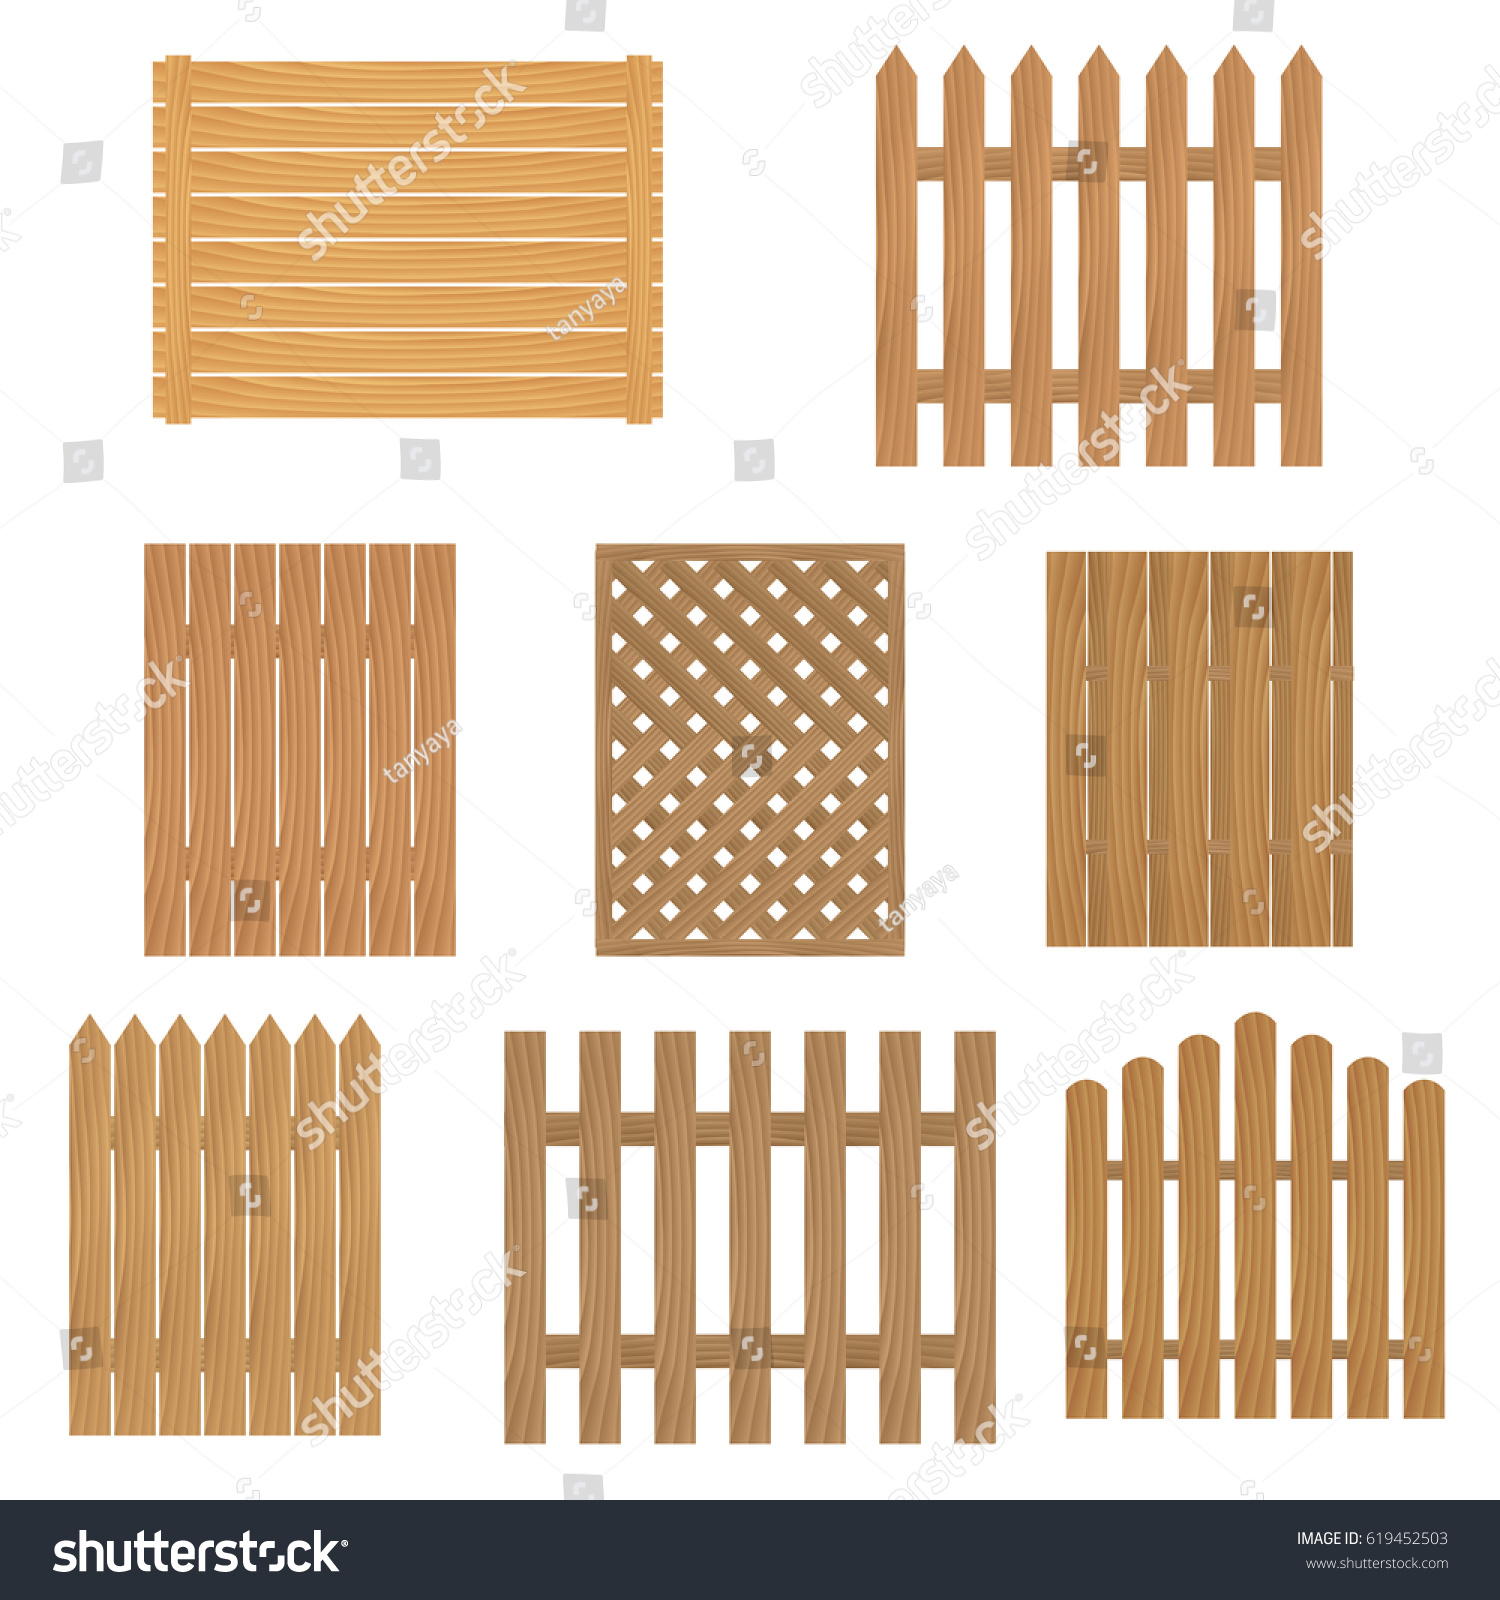 Different Types Wooden Fence Fence Wood Stock Vector Royalty Free